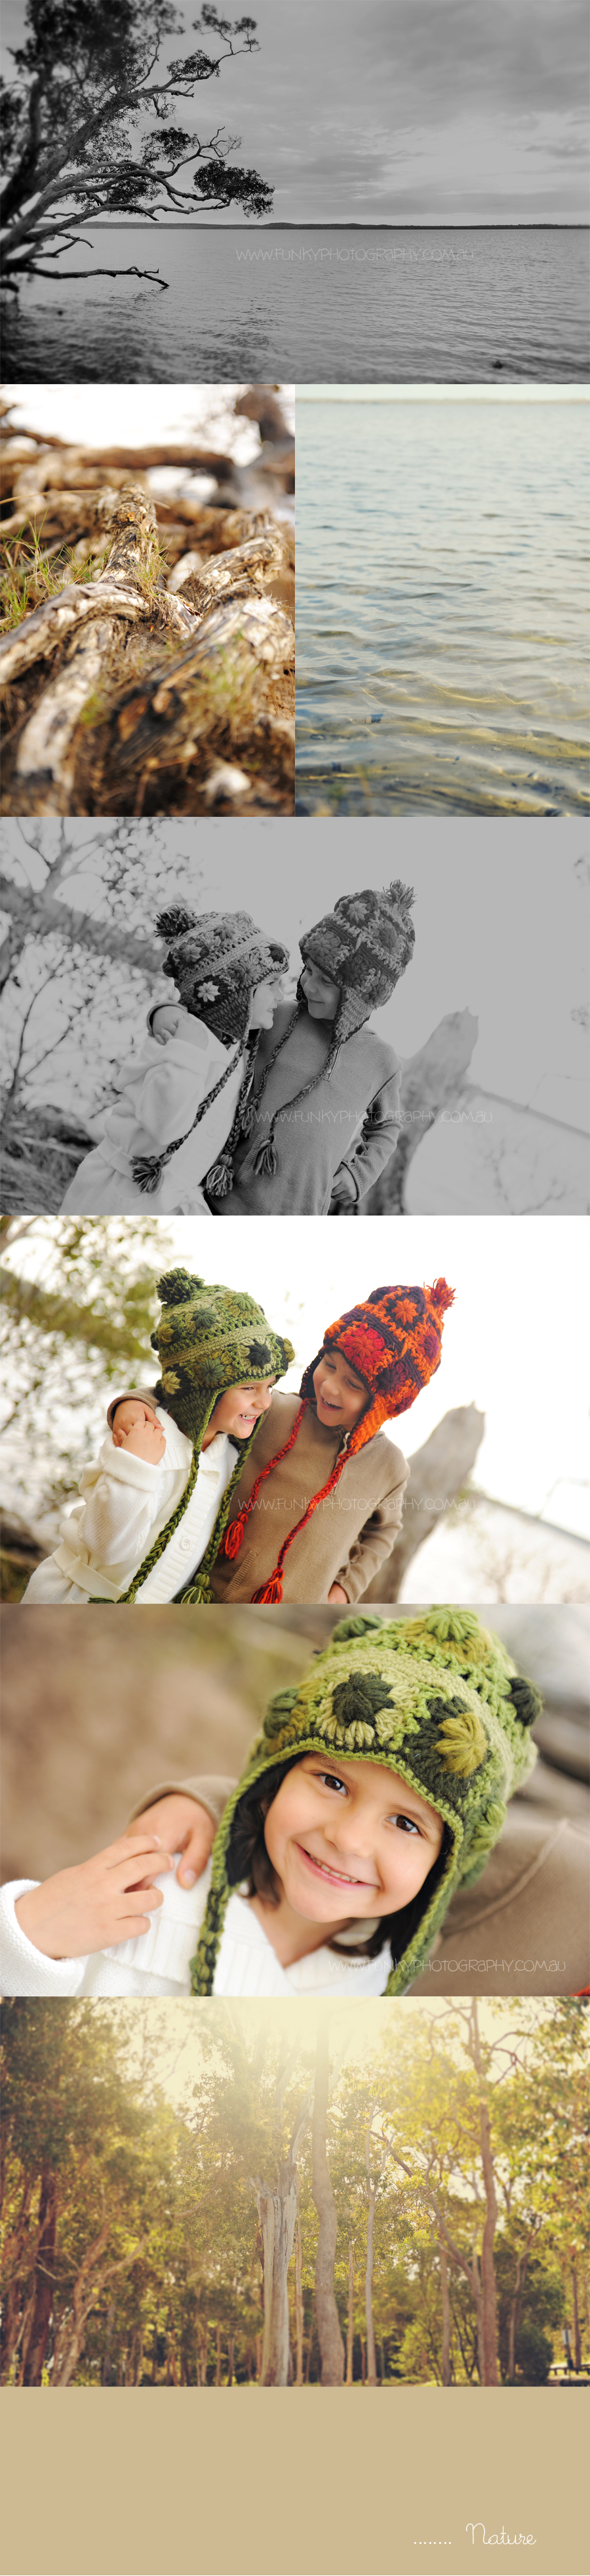 2 children at a picnic laughing in beanies